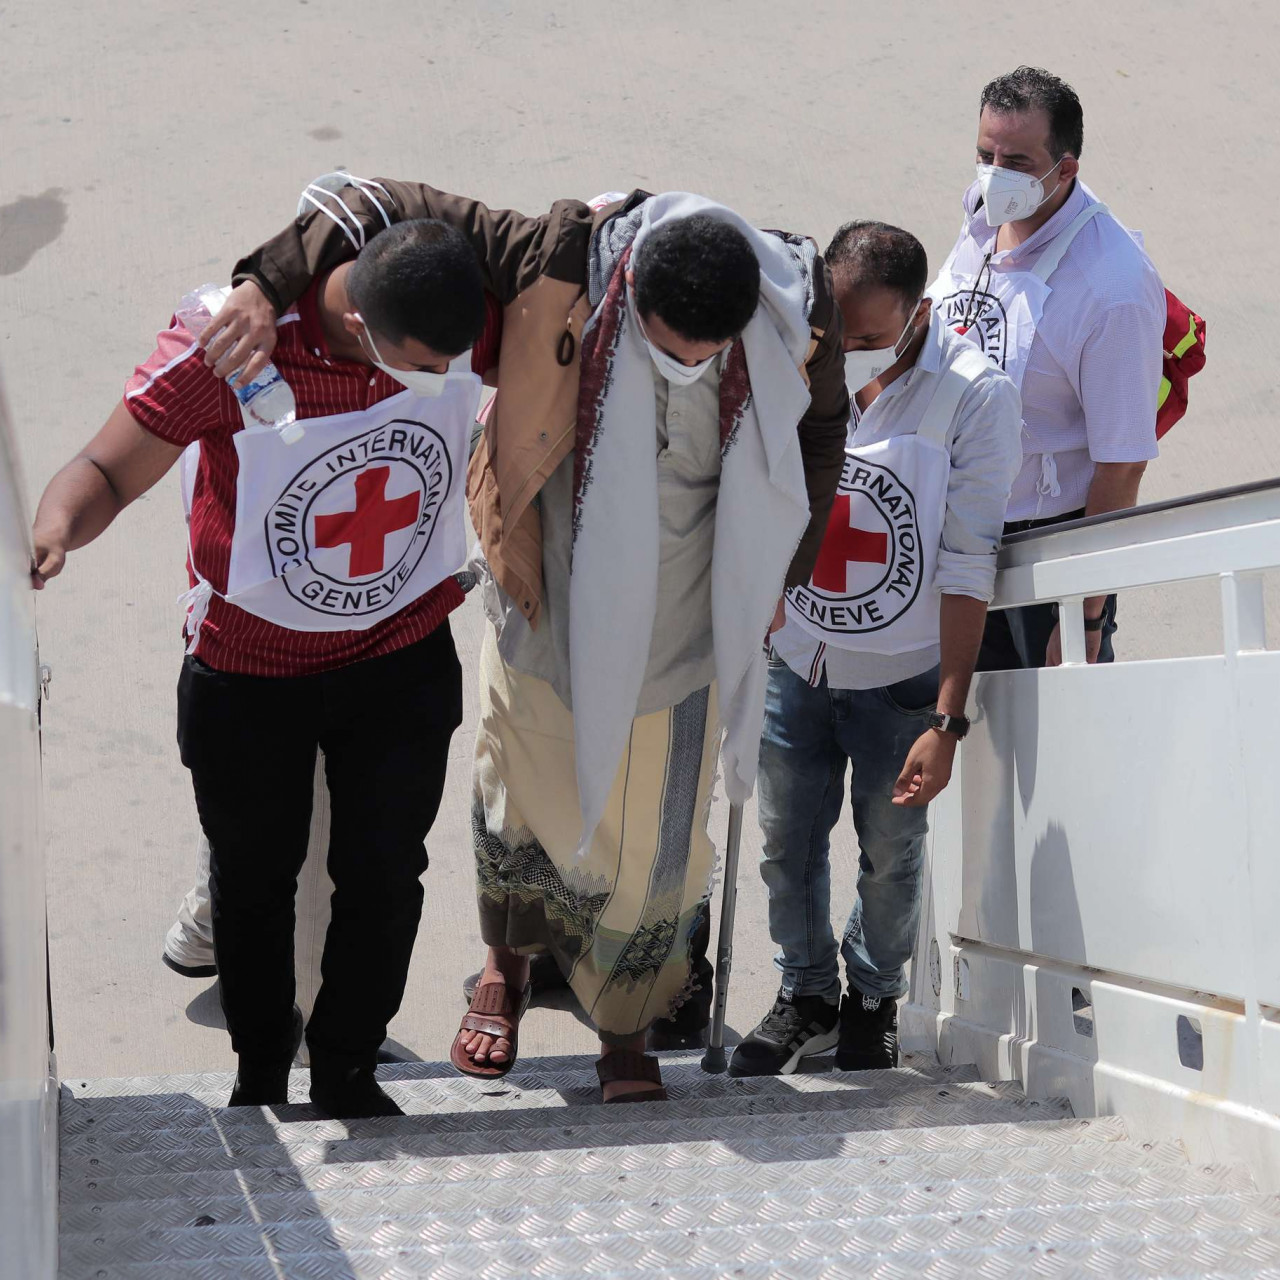 Yemen conflict: the detainee transfer that builds hope for the future |  International Committee of the Red Cross